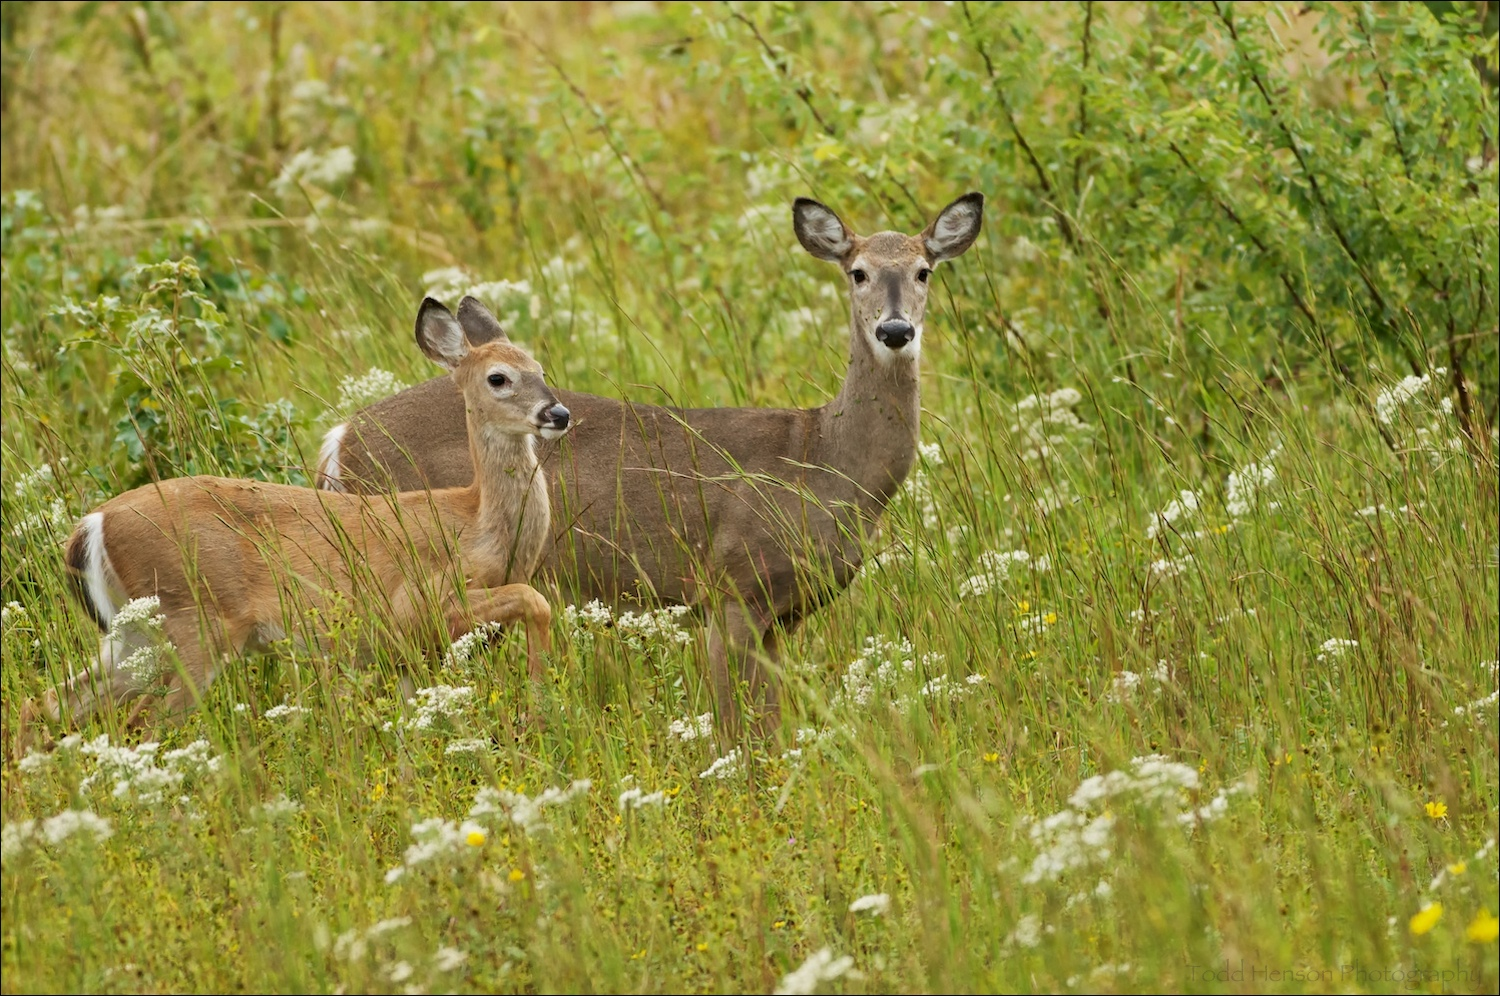 Pair of white-tailed deer in field. They came very close before they noticed me.